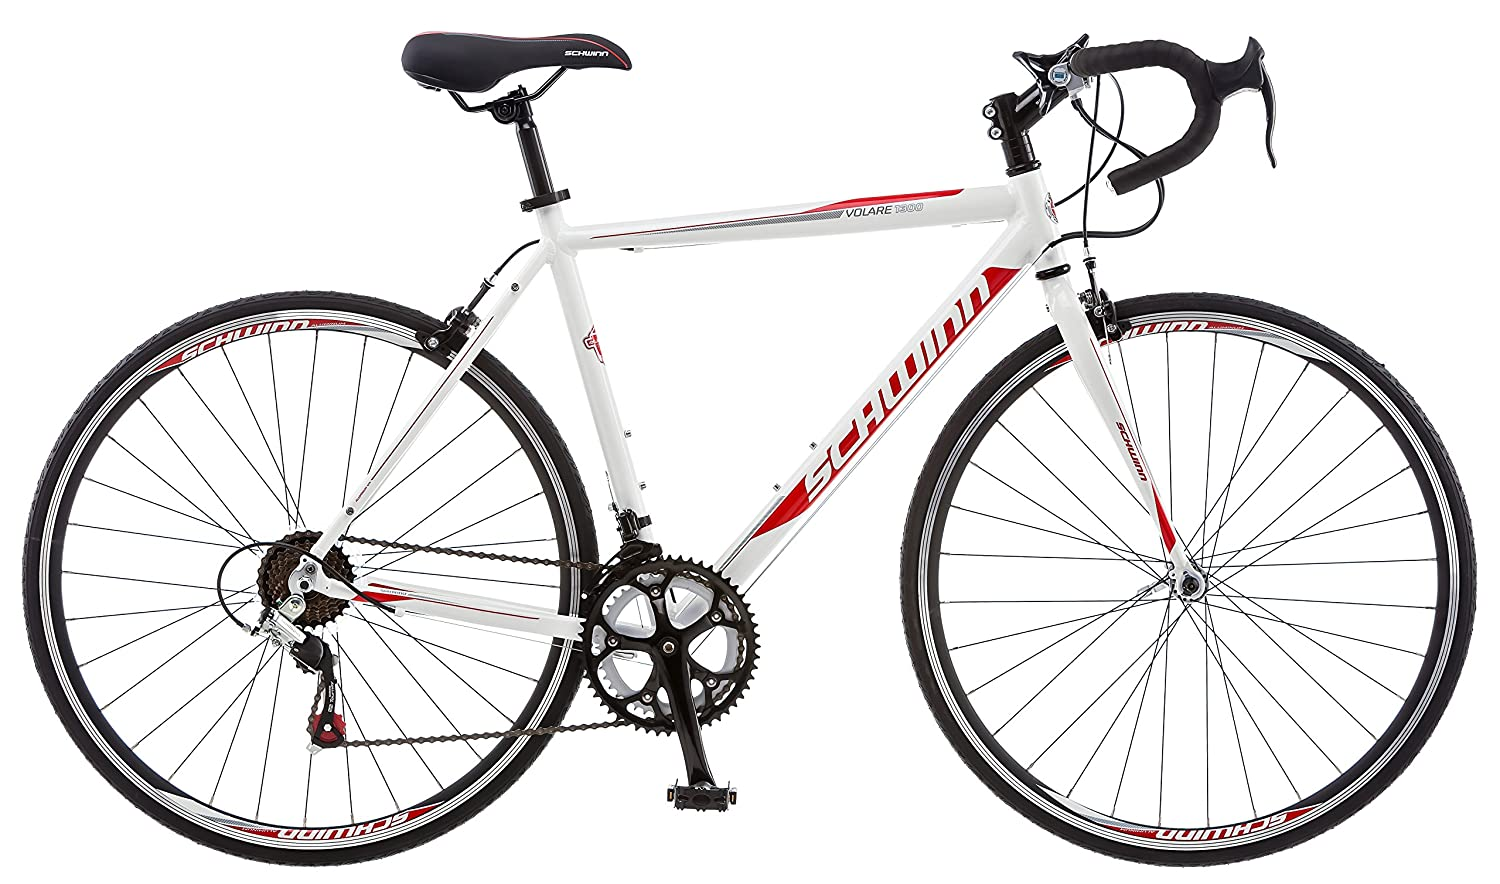 Schwinn Volare 1300 Best Road Bike Under $1000